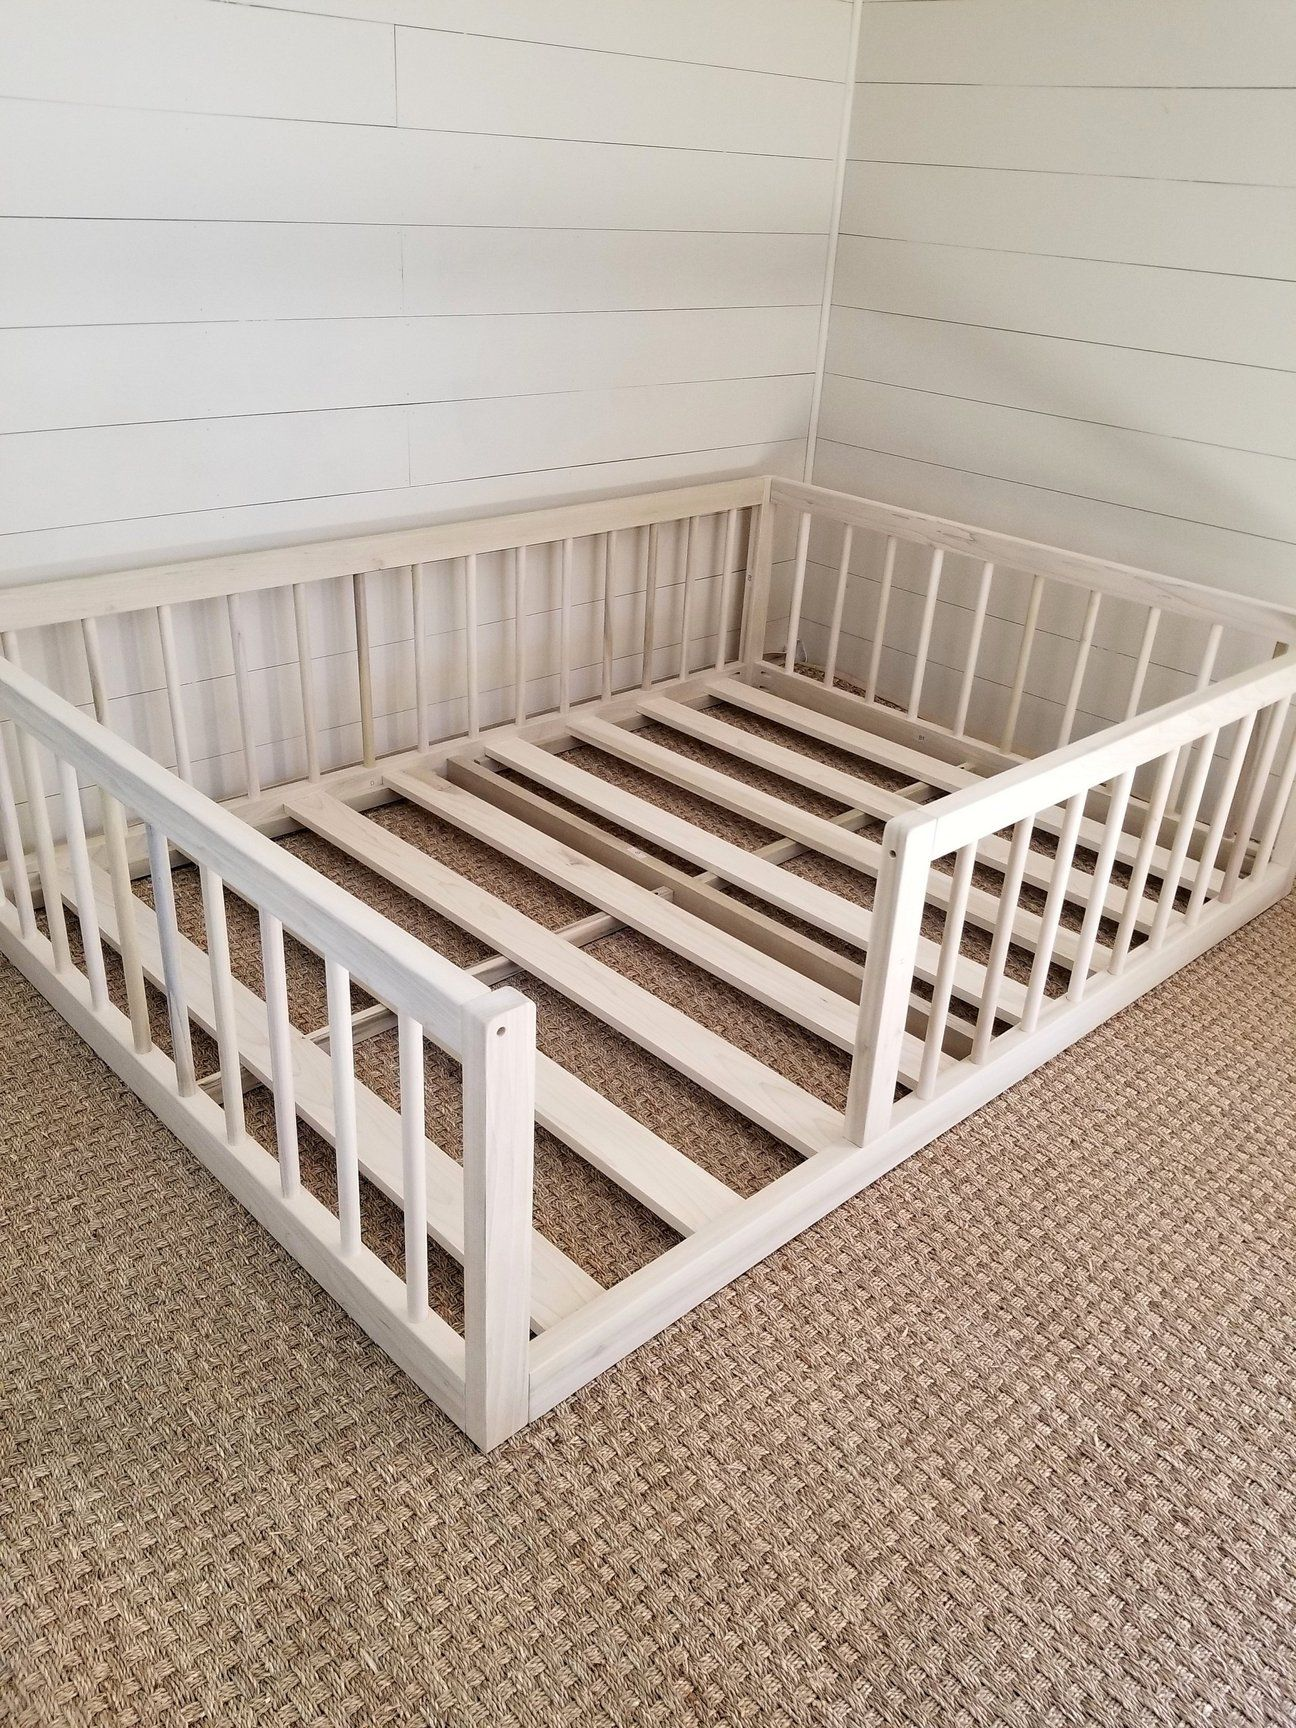 Montessori Floor Bed With Rails Full Size Toddler Floor Bed